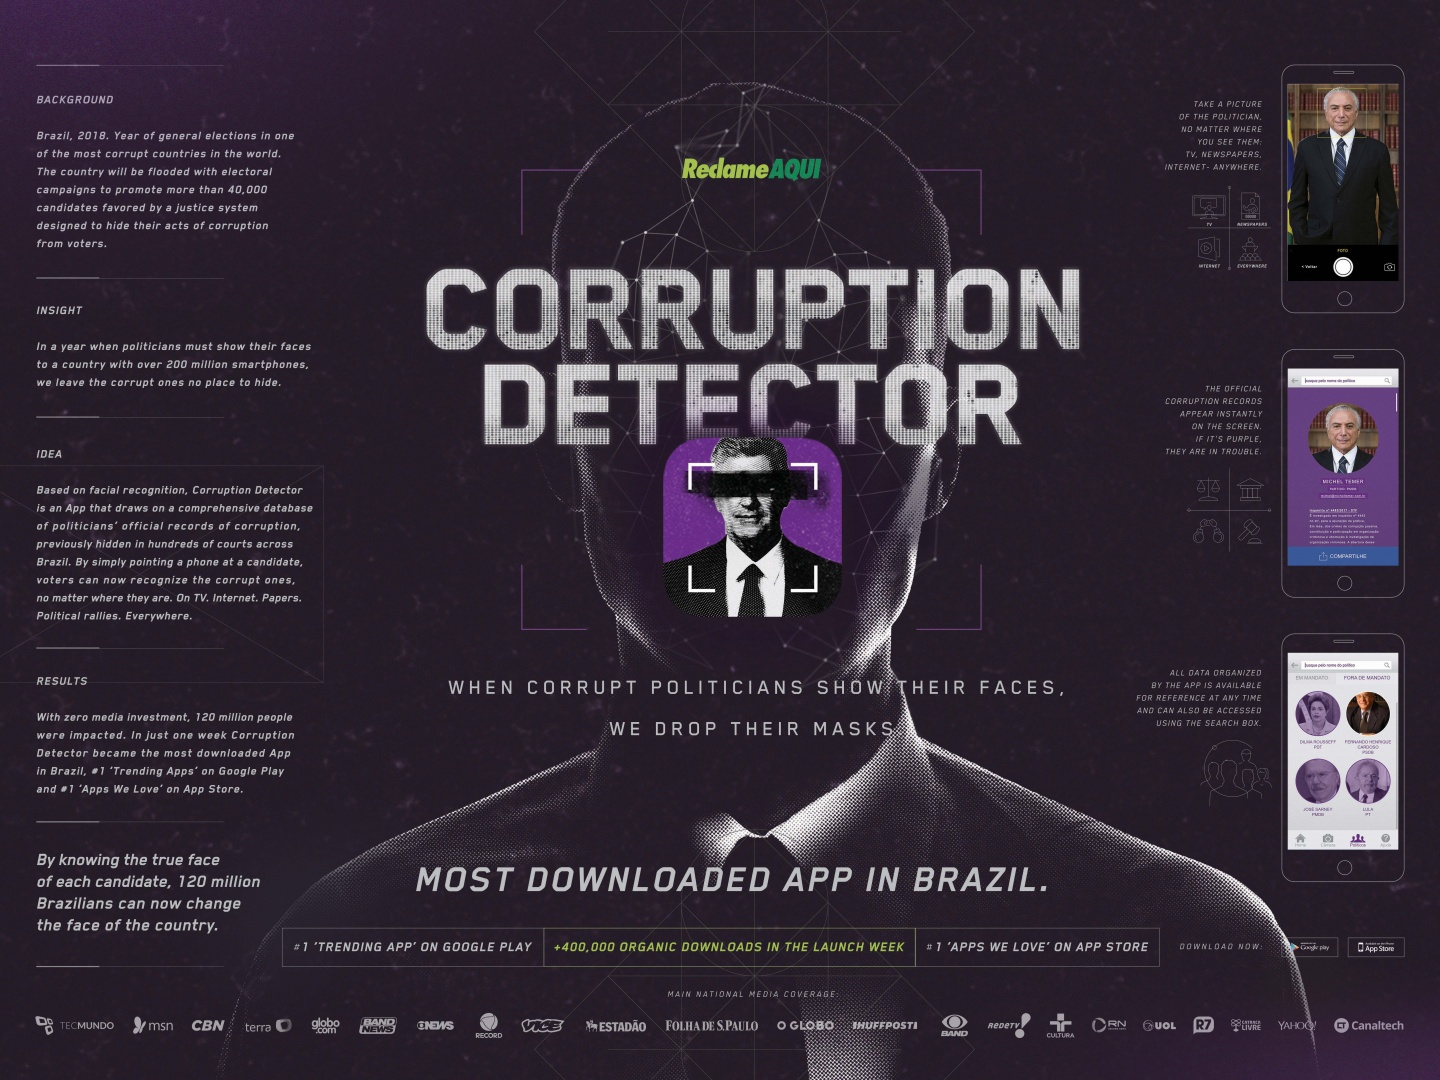 CORRUPTION DETECTOR Thumbnail